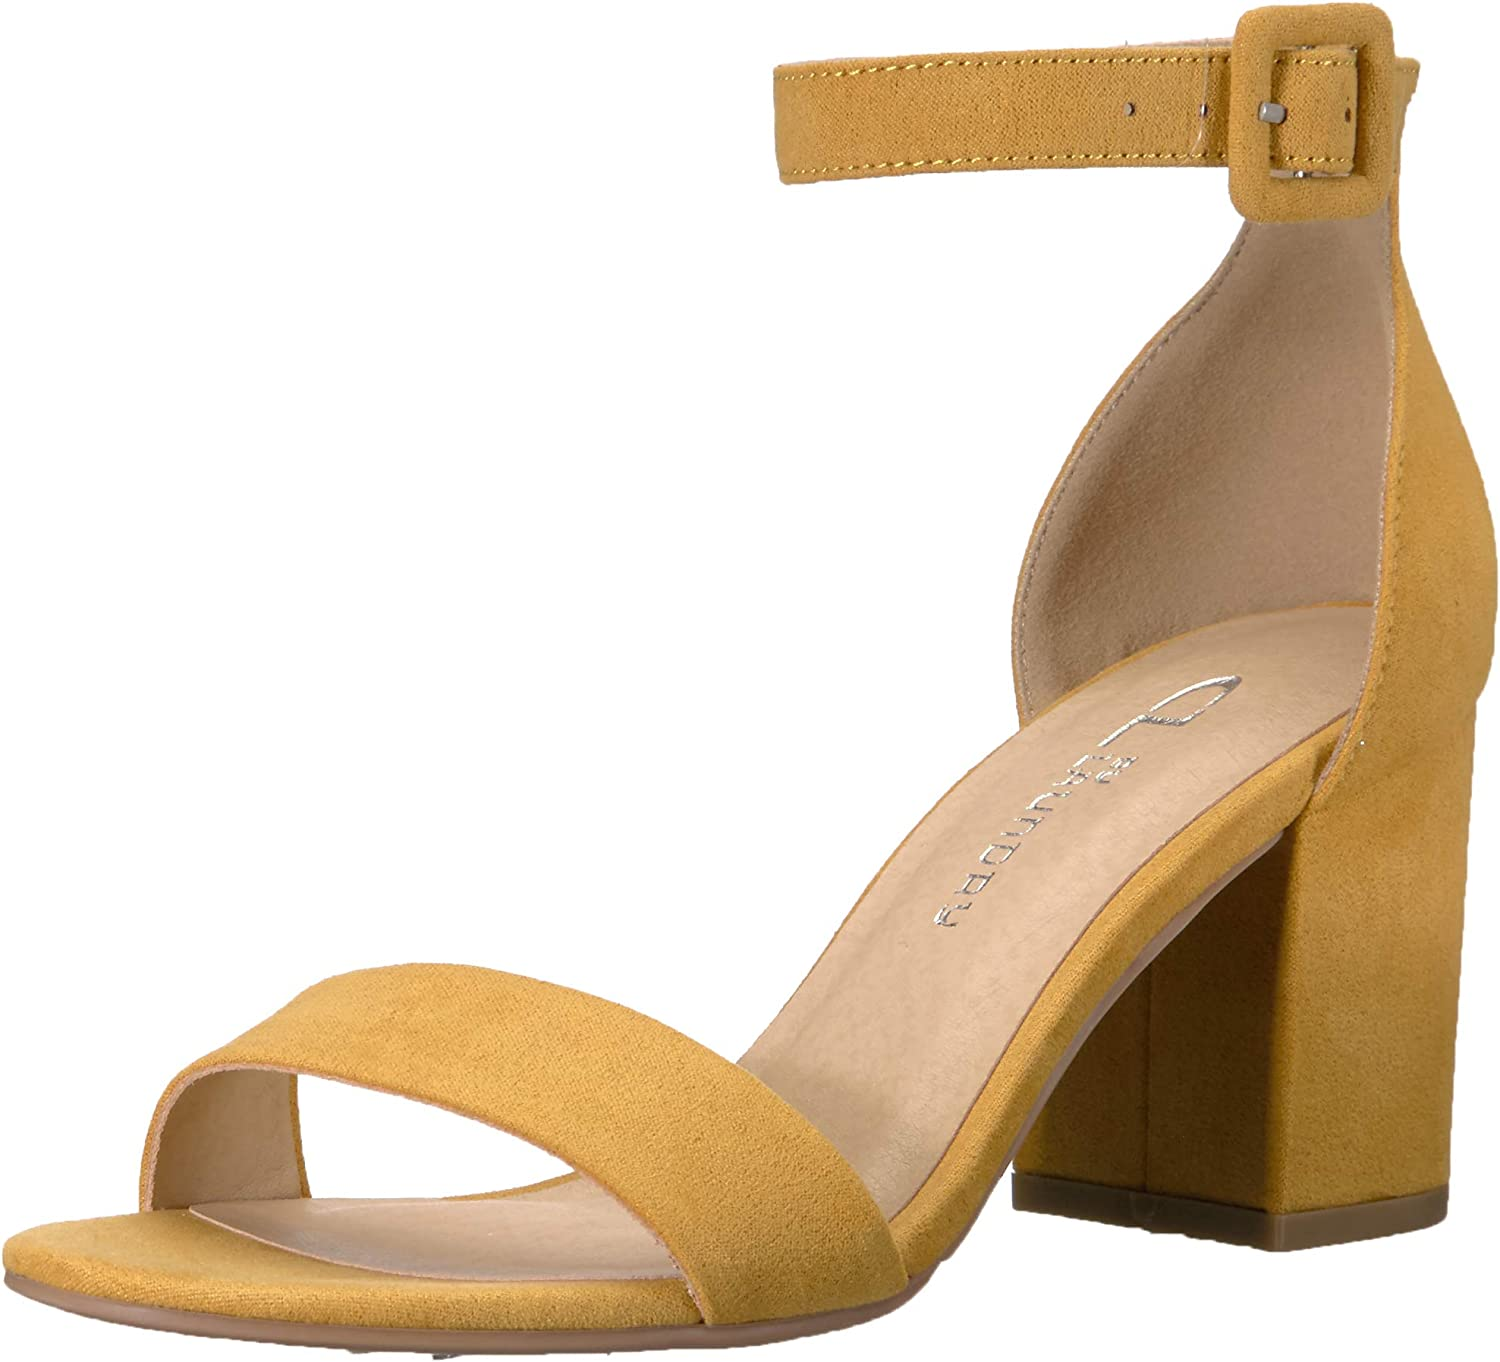 CL by Chinese Laundry Women's Max 72% OFF Sandal Max 78% OFF Jody Heeled